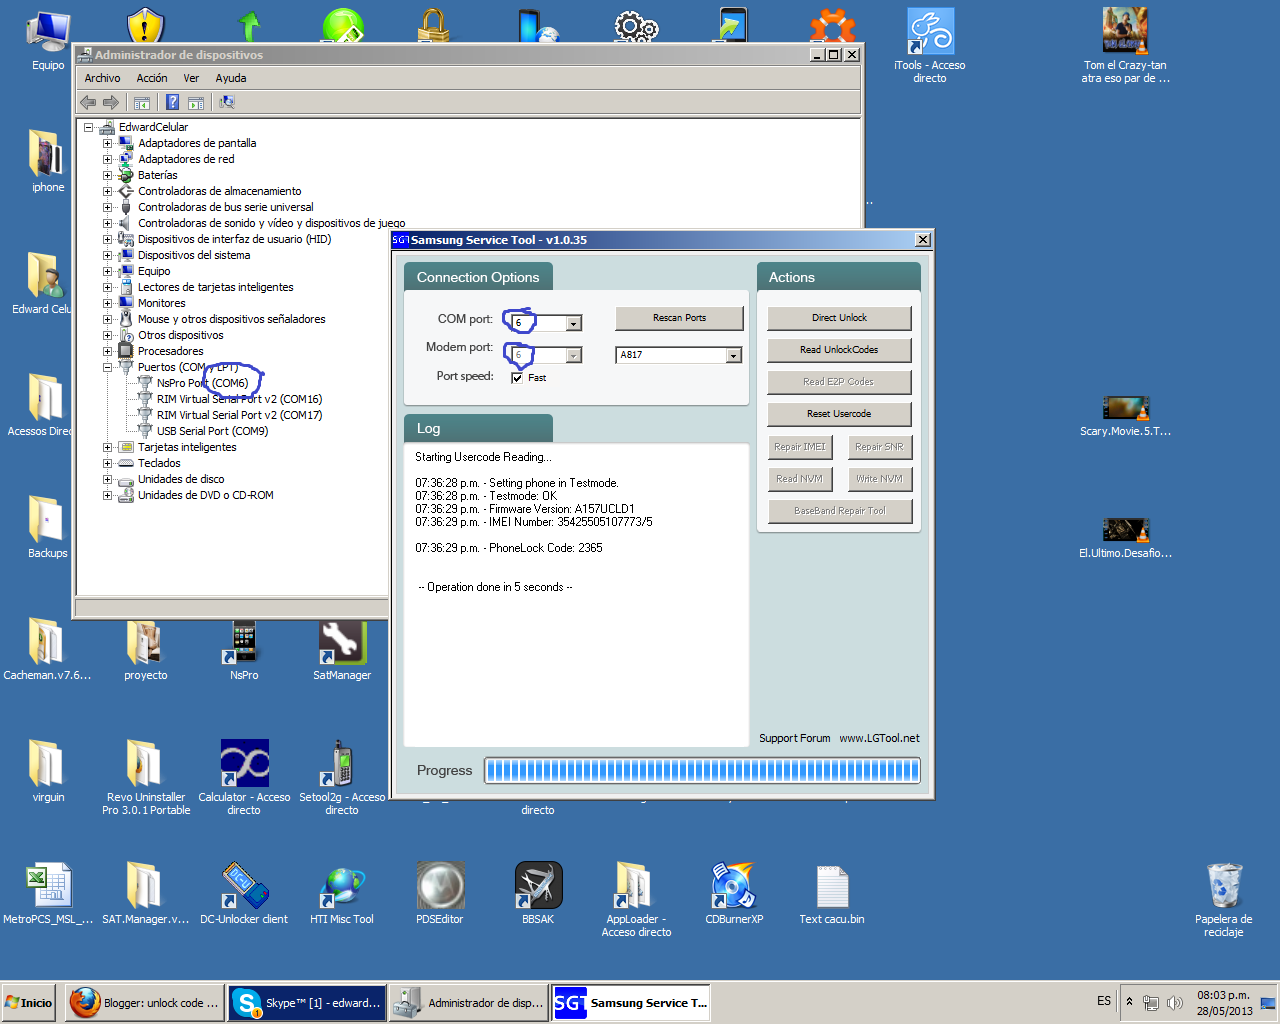 Srs remote unlock code client v1 0.15 free download pc